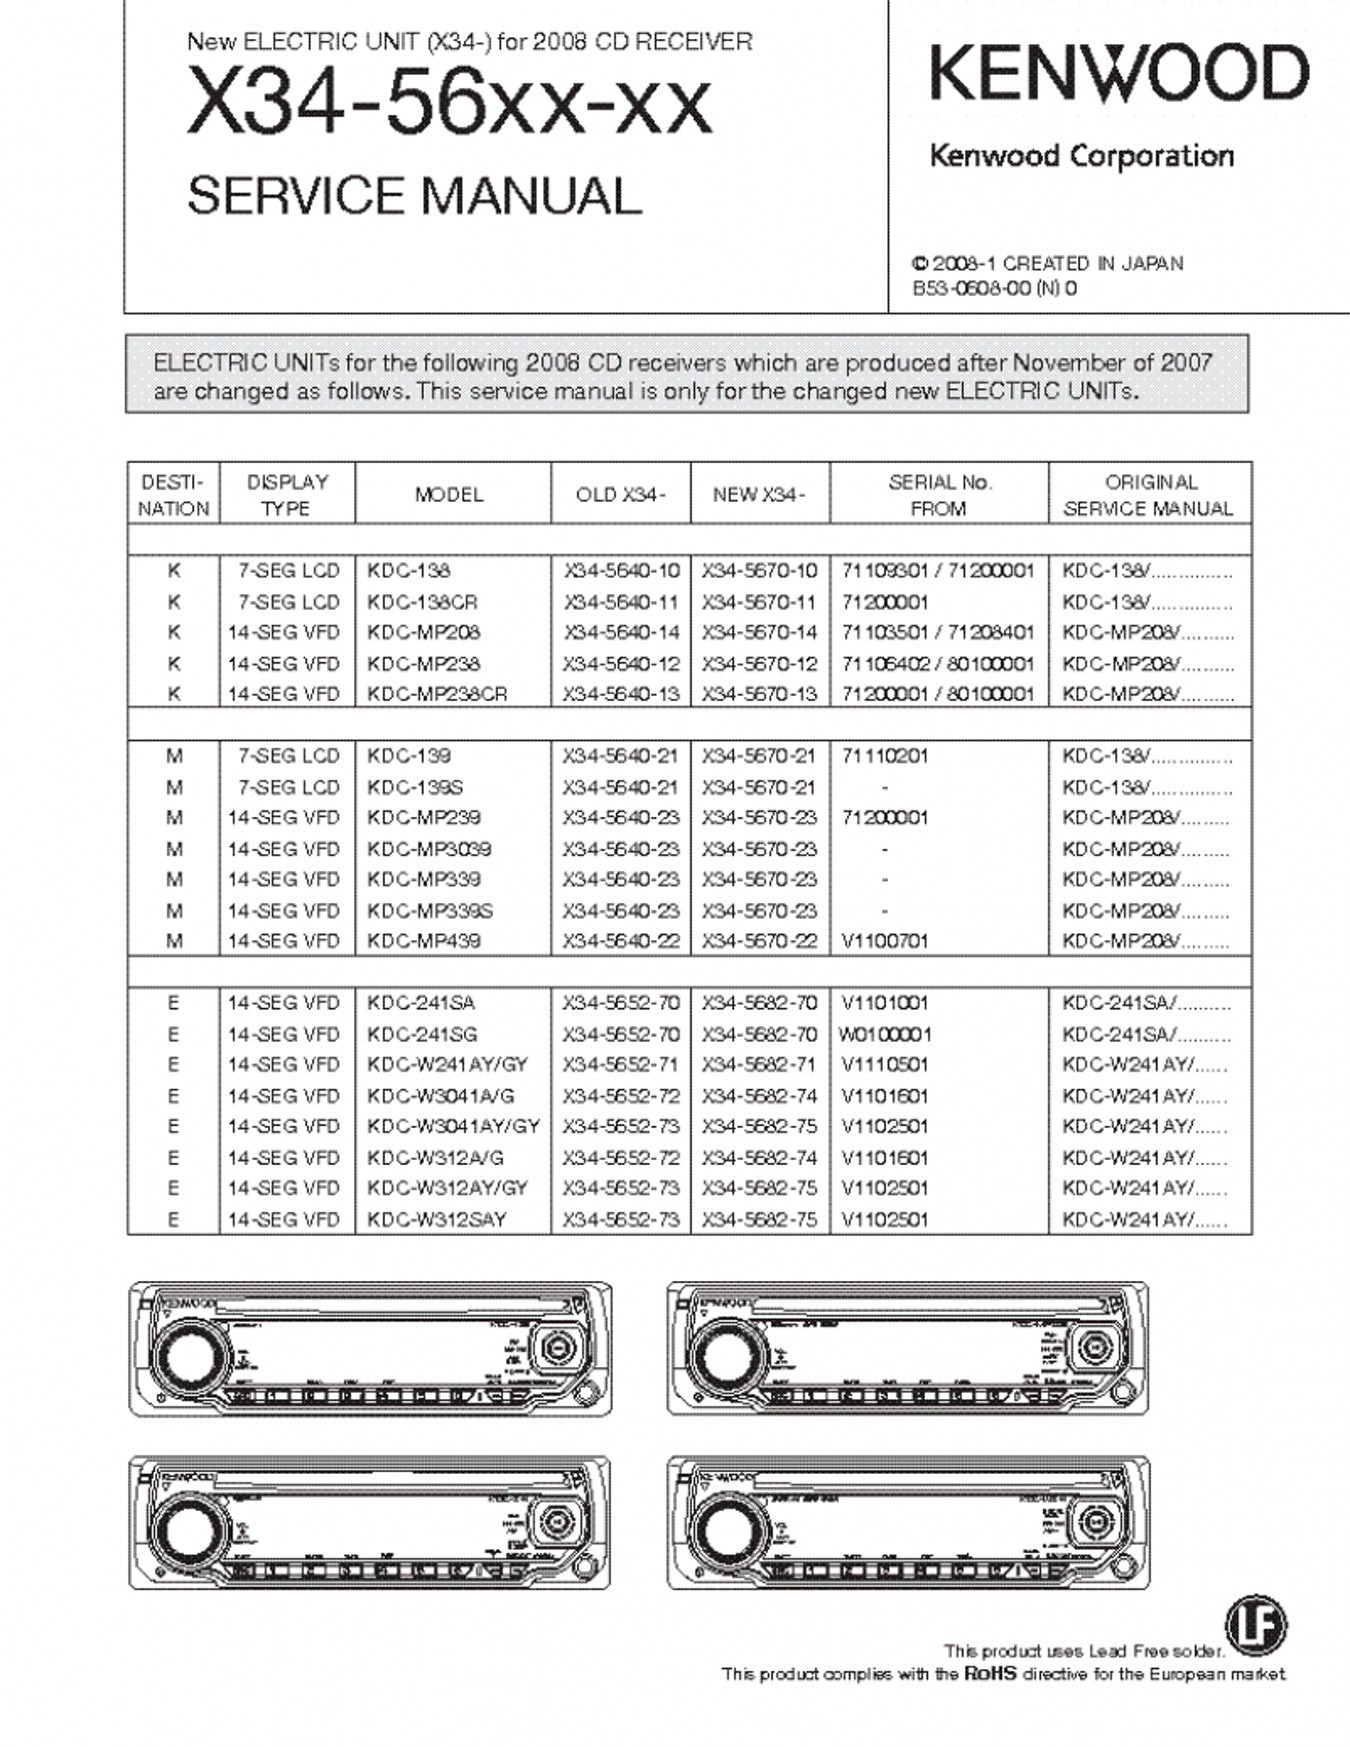 Kenwood Kdc 122 Wiring Diagram 138 | Wiring Diagram - Kenwood Kdc 152 Wiring Diagram